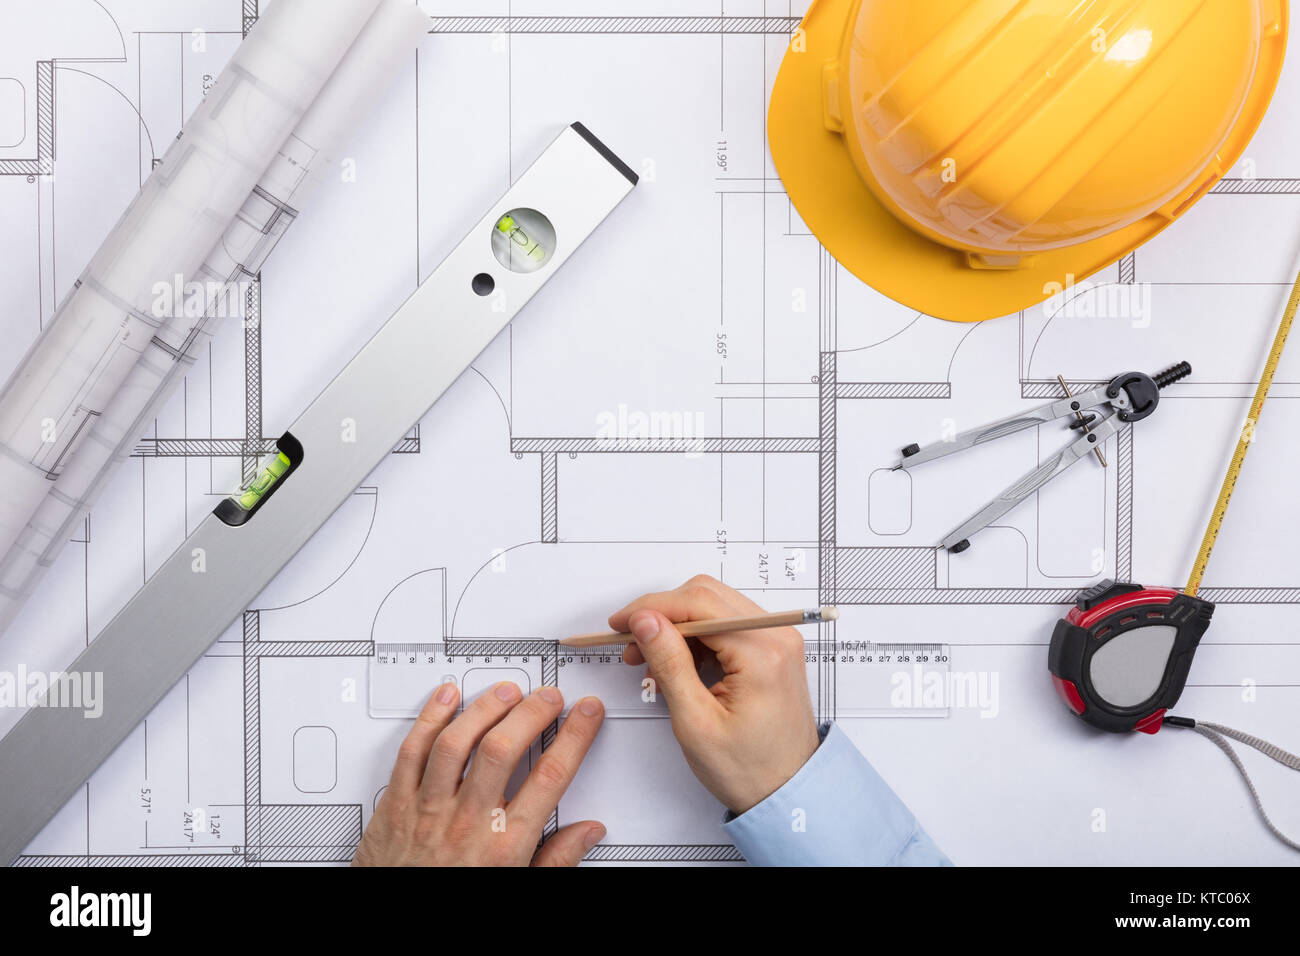 Architect hands working on blueprint Stock Photo: 169908674 - Alamy